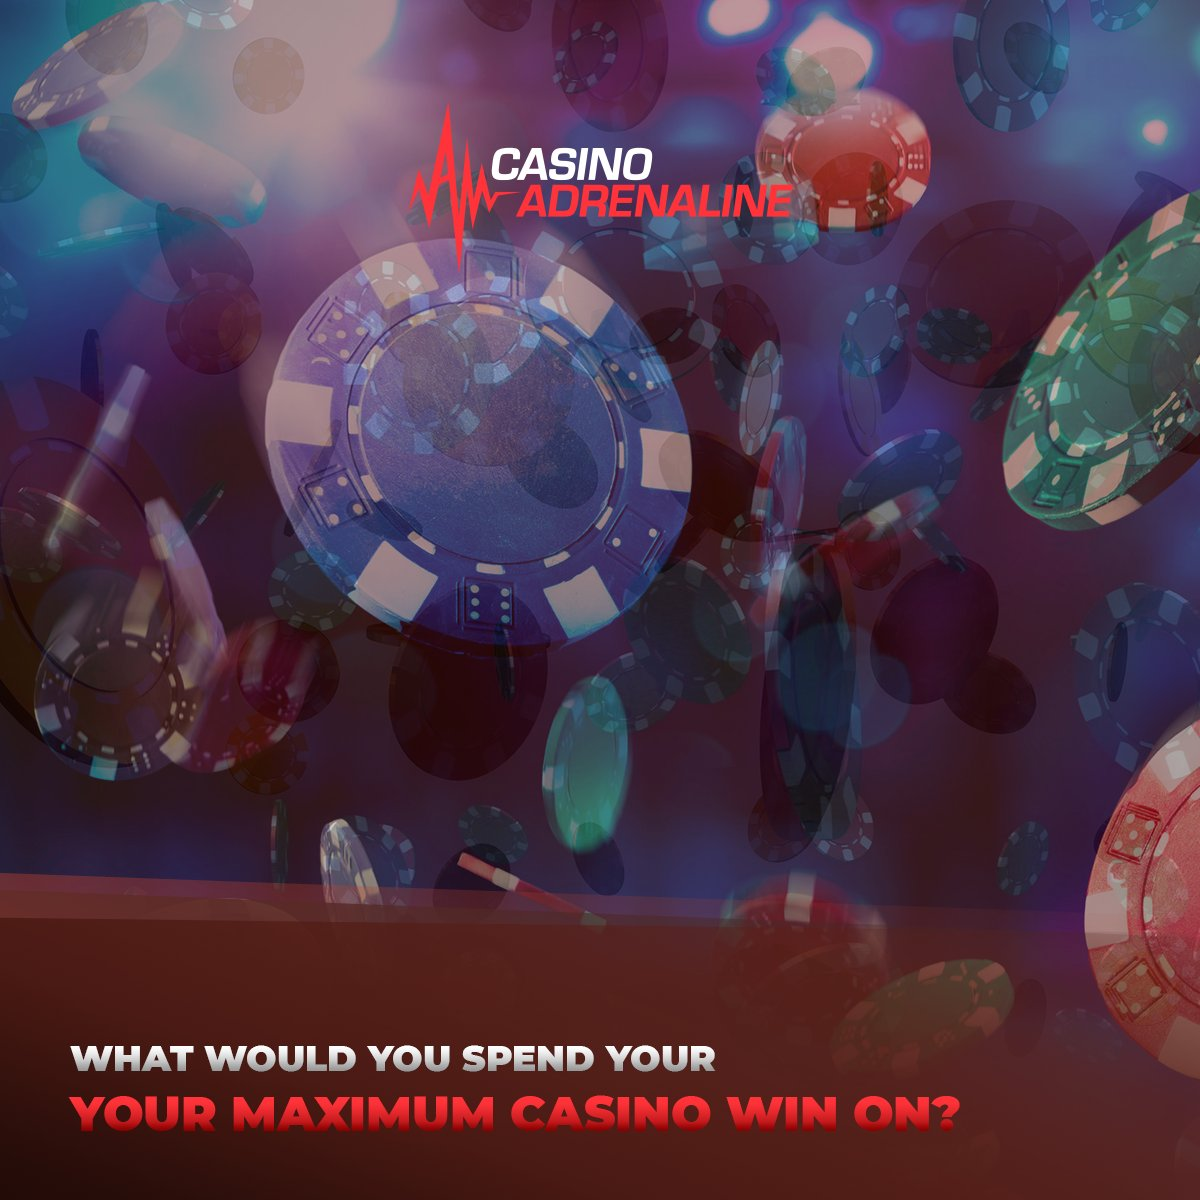 test Twitter Media - What would you spend your maximum casino win on? 🤔😁🤑 #CasinoAdrenaline #CasinoAdrenalingaming #casinos #slot #casinoluck #enjoythegame #TotalJackpot https://t.co/yQAGJpMepB